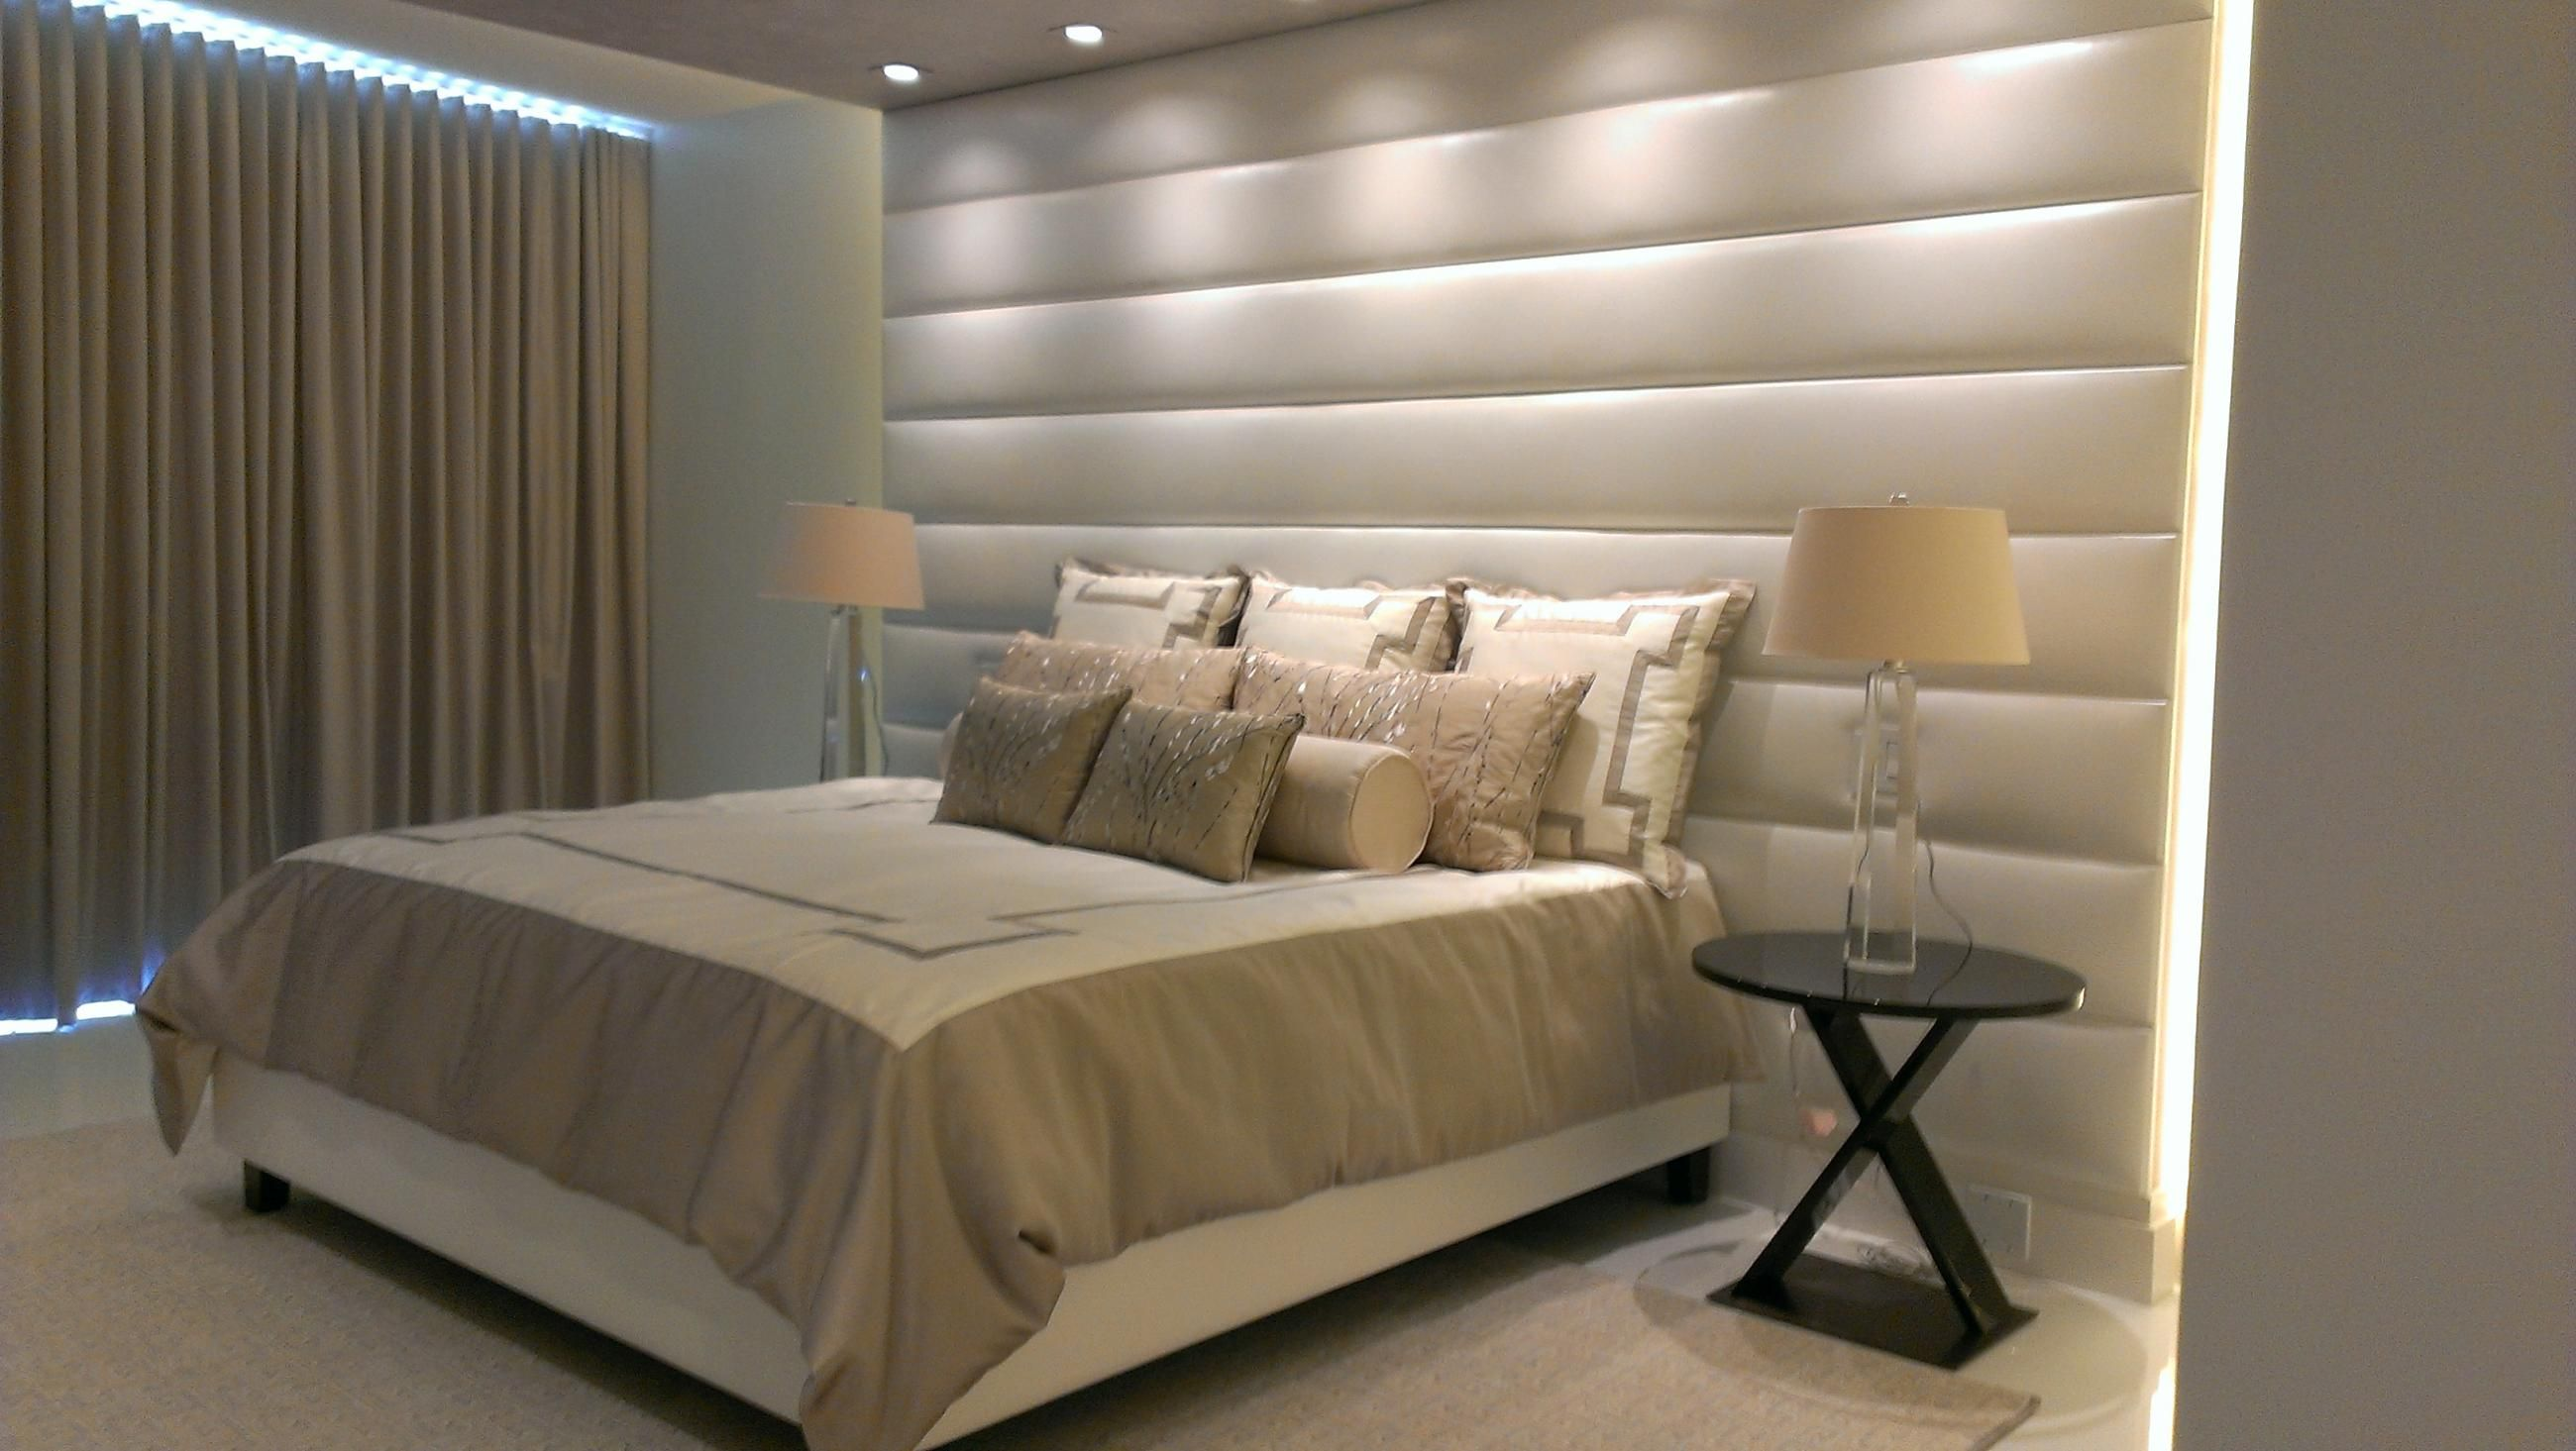 Pin By Michelle Kinkaid On Bedroom Upholstered Wall Panels Upholstered Walls Wall Panels Bedroom